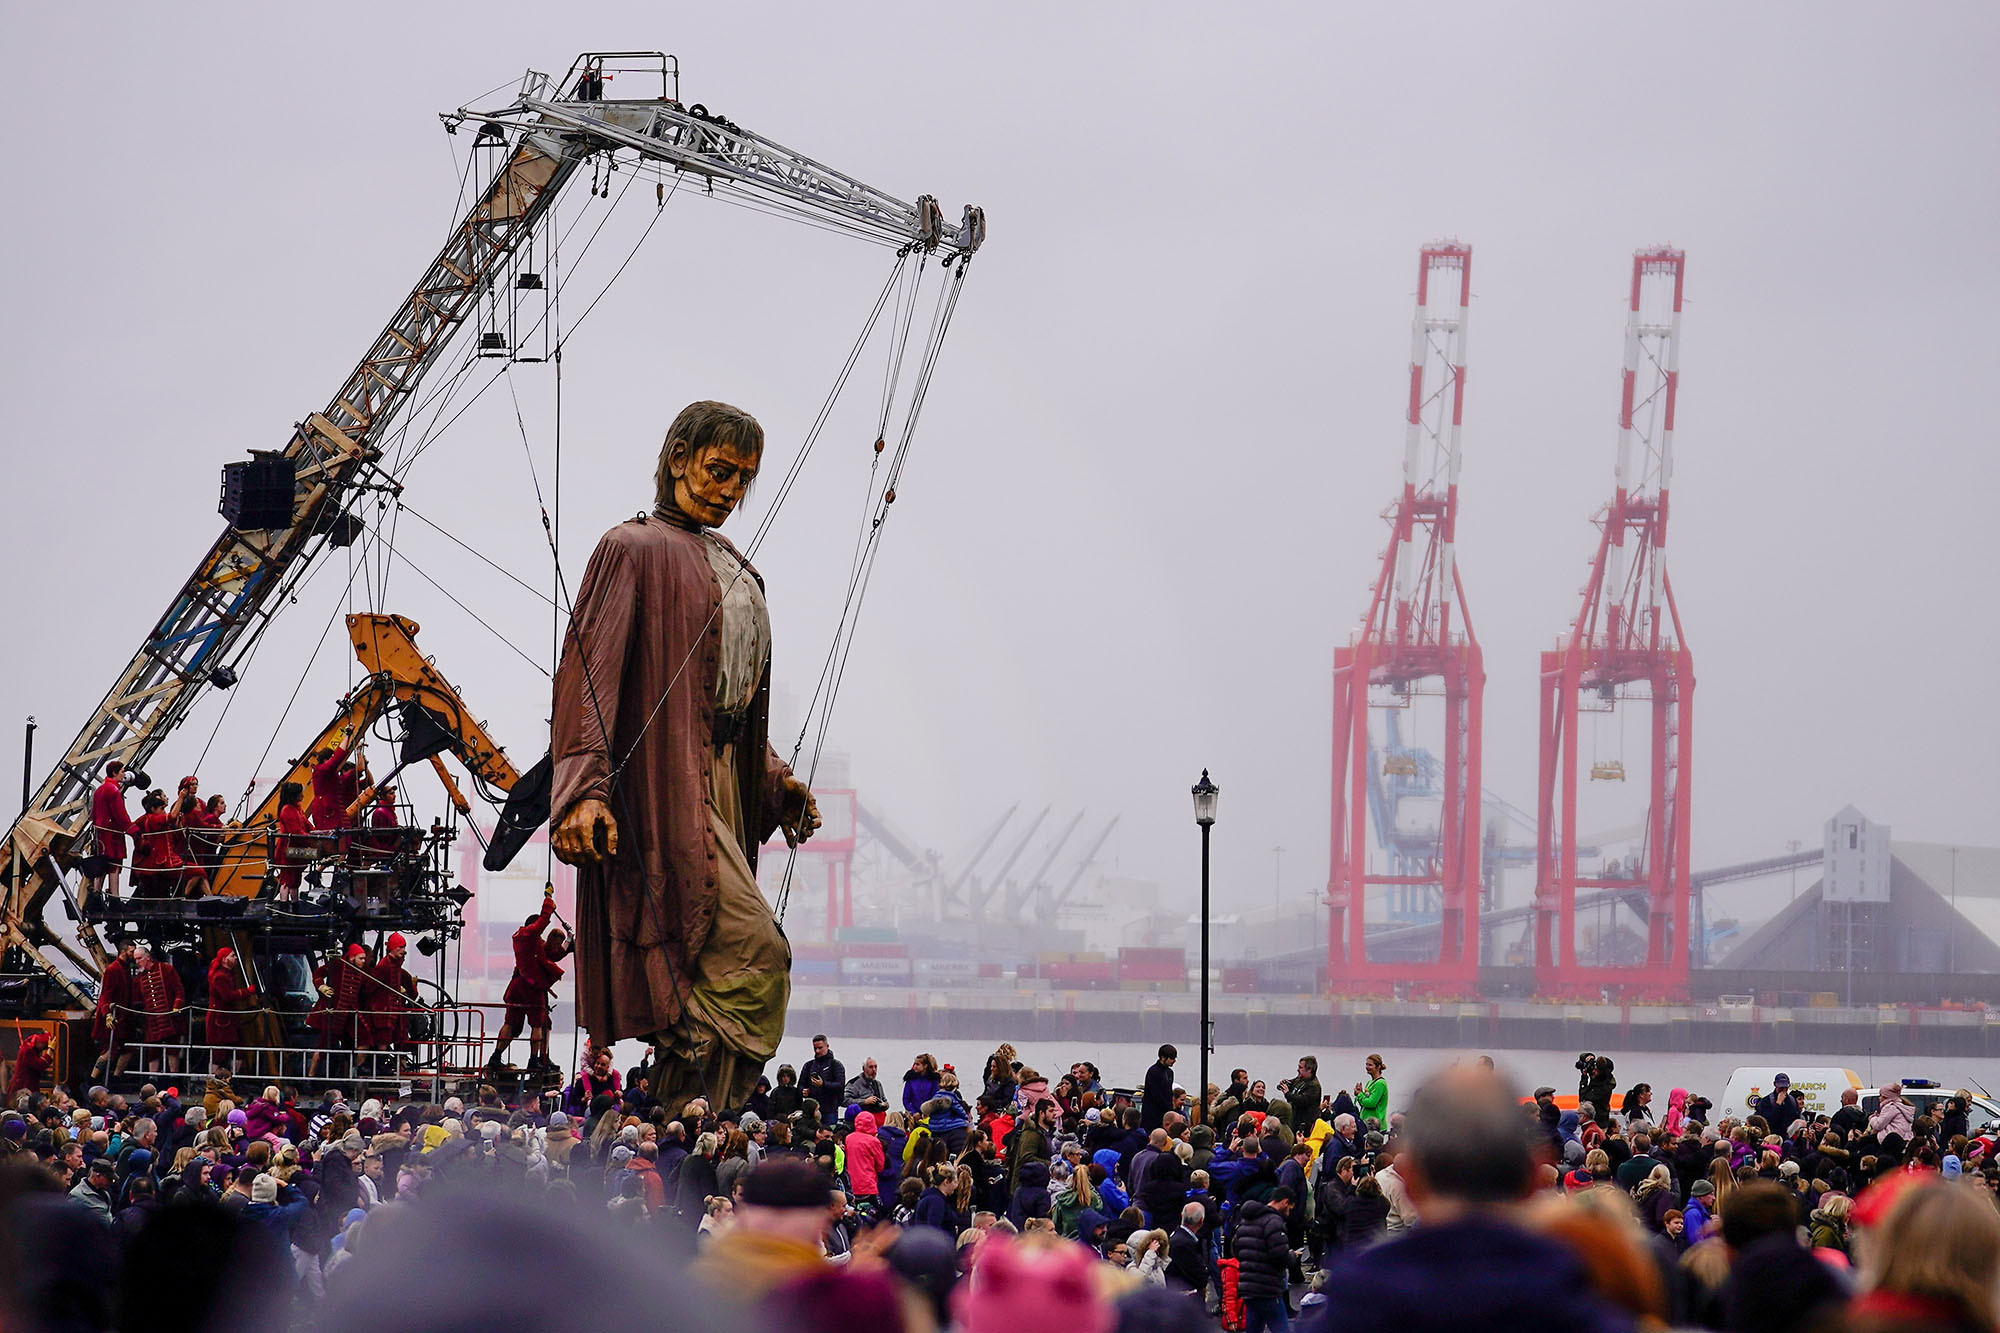 The Final Appearance of the Giant Puppets of Royal de Luxe